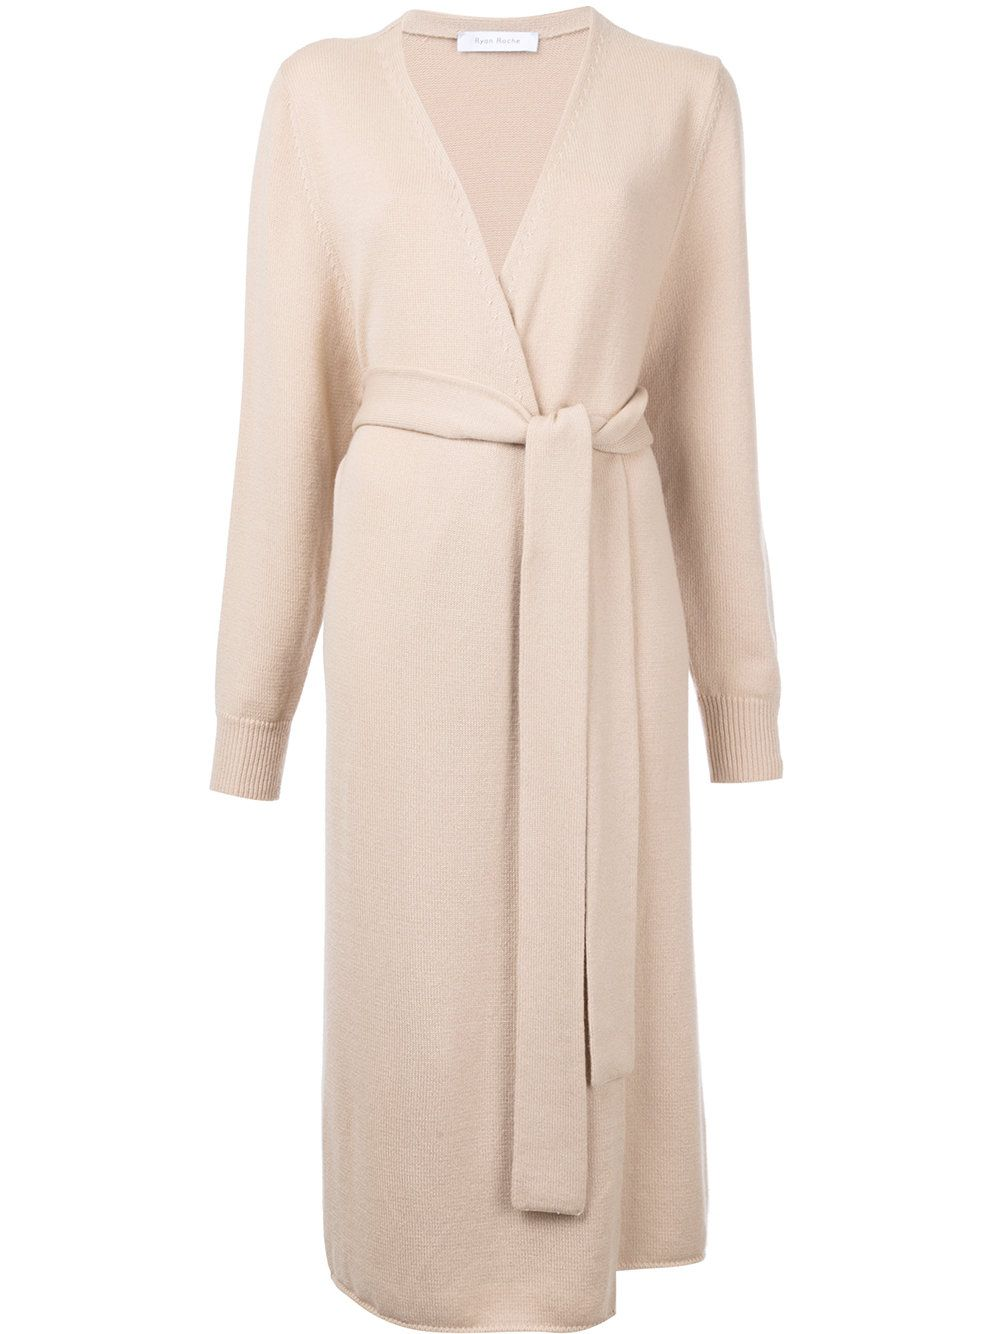 Ryan Roche Cashmere Long Belted Cardigan | Cashmere, Knitwear and ...